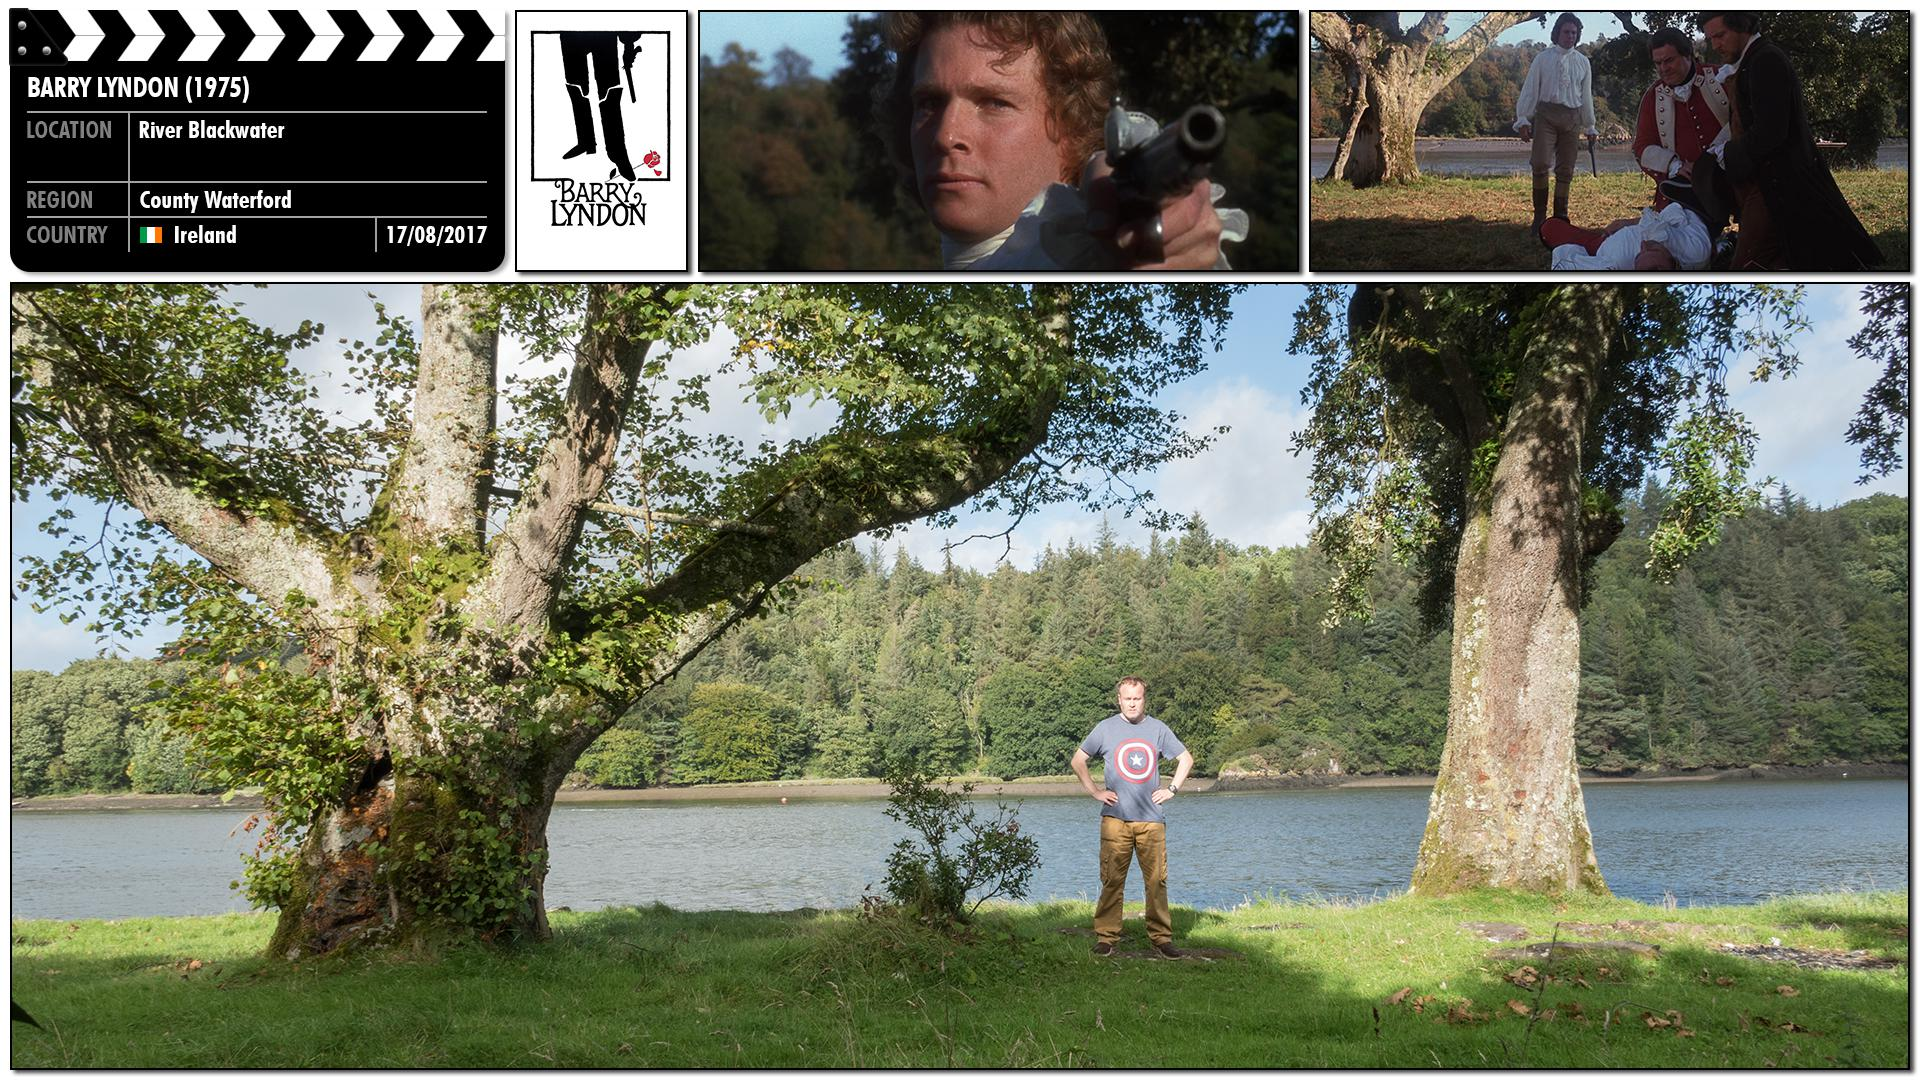 Filming location photo for Barry Lyndon (1975) 5 of 15